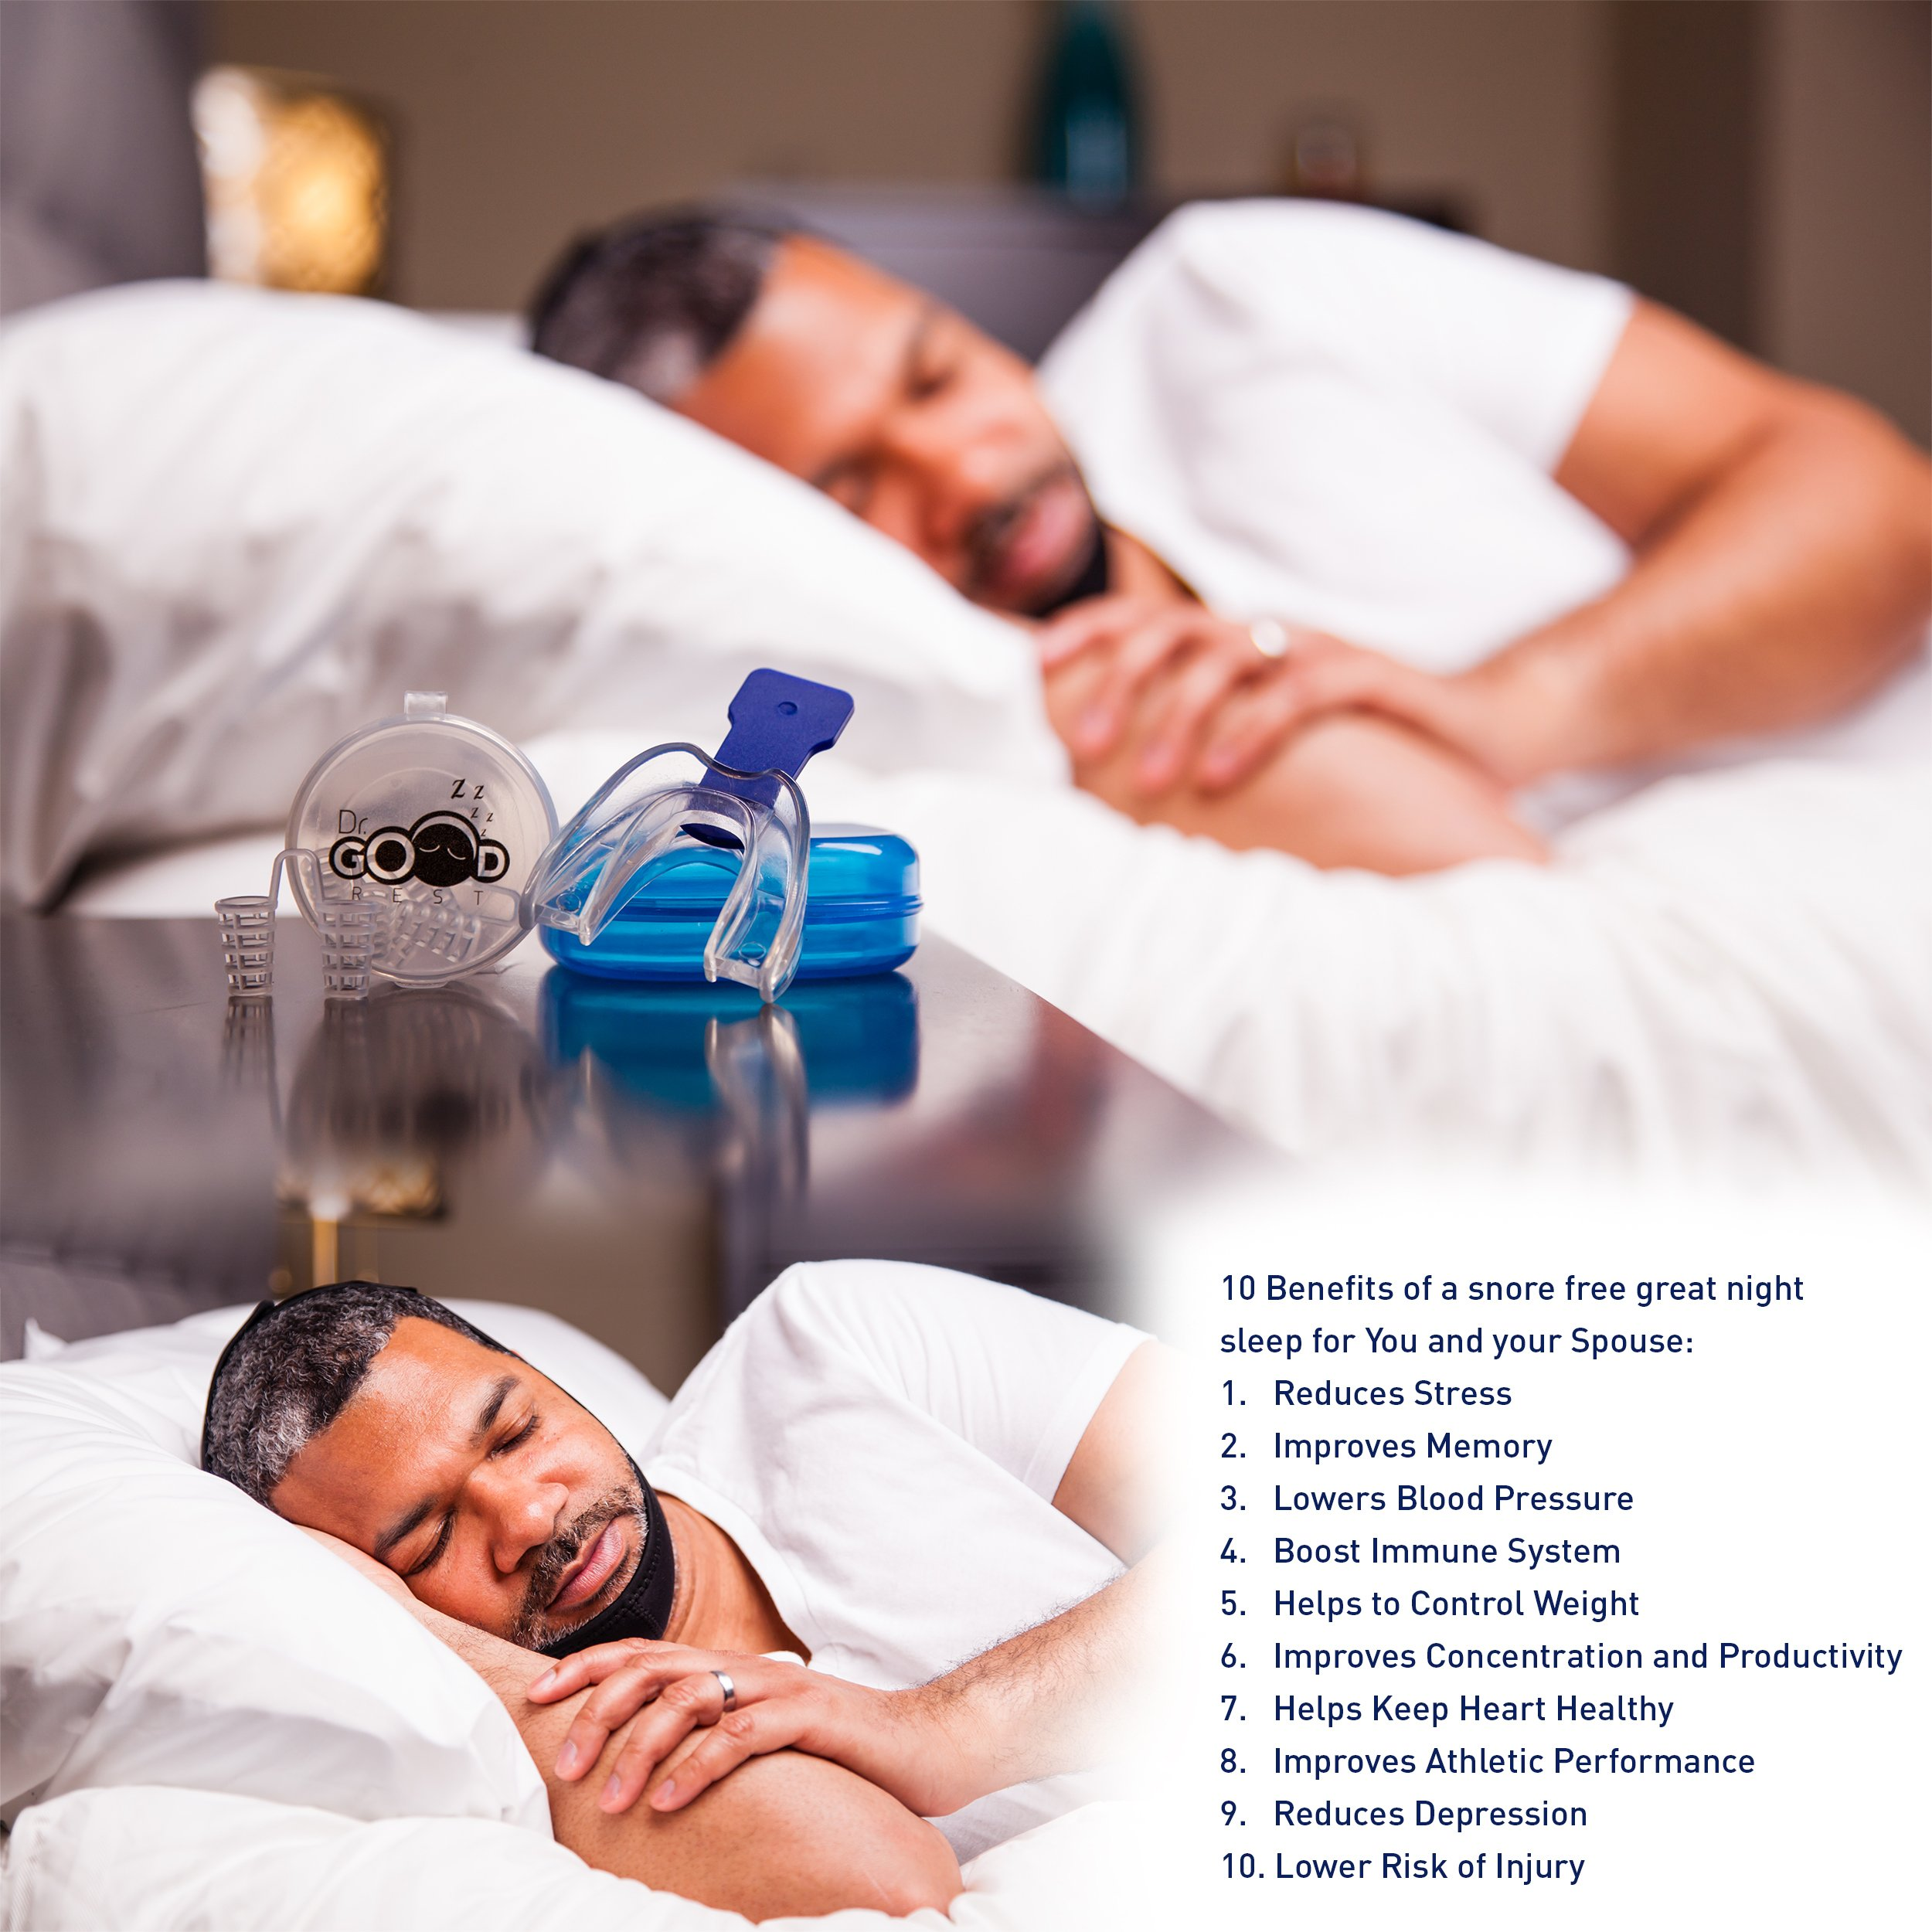 Anti Snoring Devices Kit with Chin Strap, Mouthpiece and Nose Vents for Peaceful Restorative Sleep (3 Pieces)